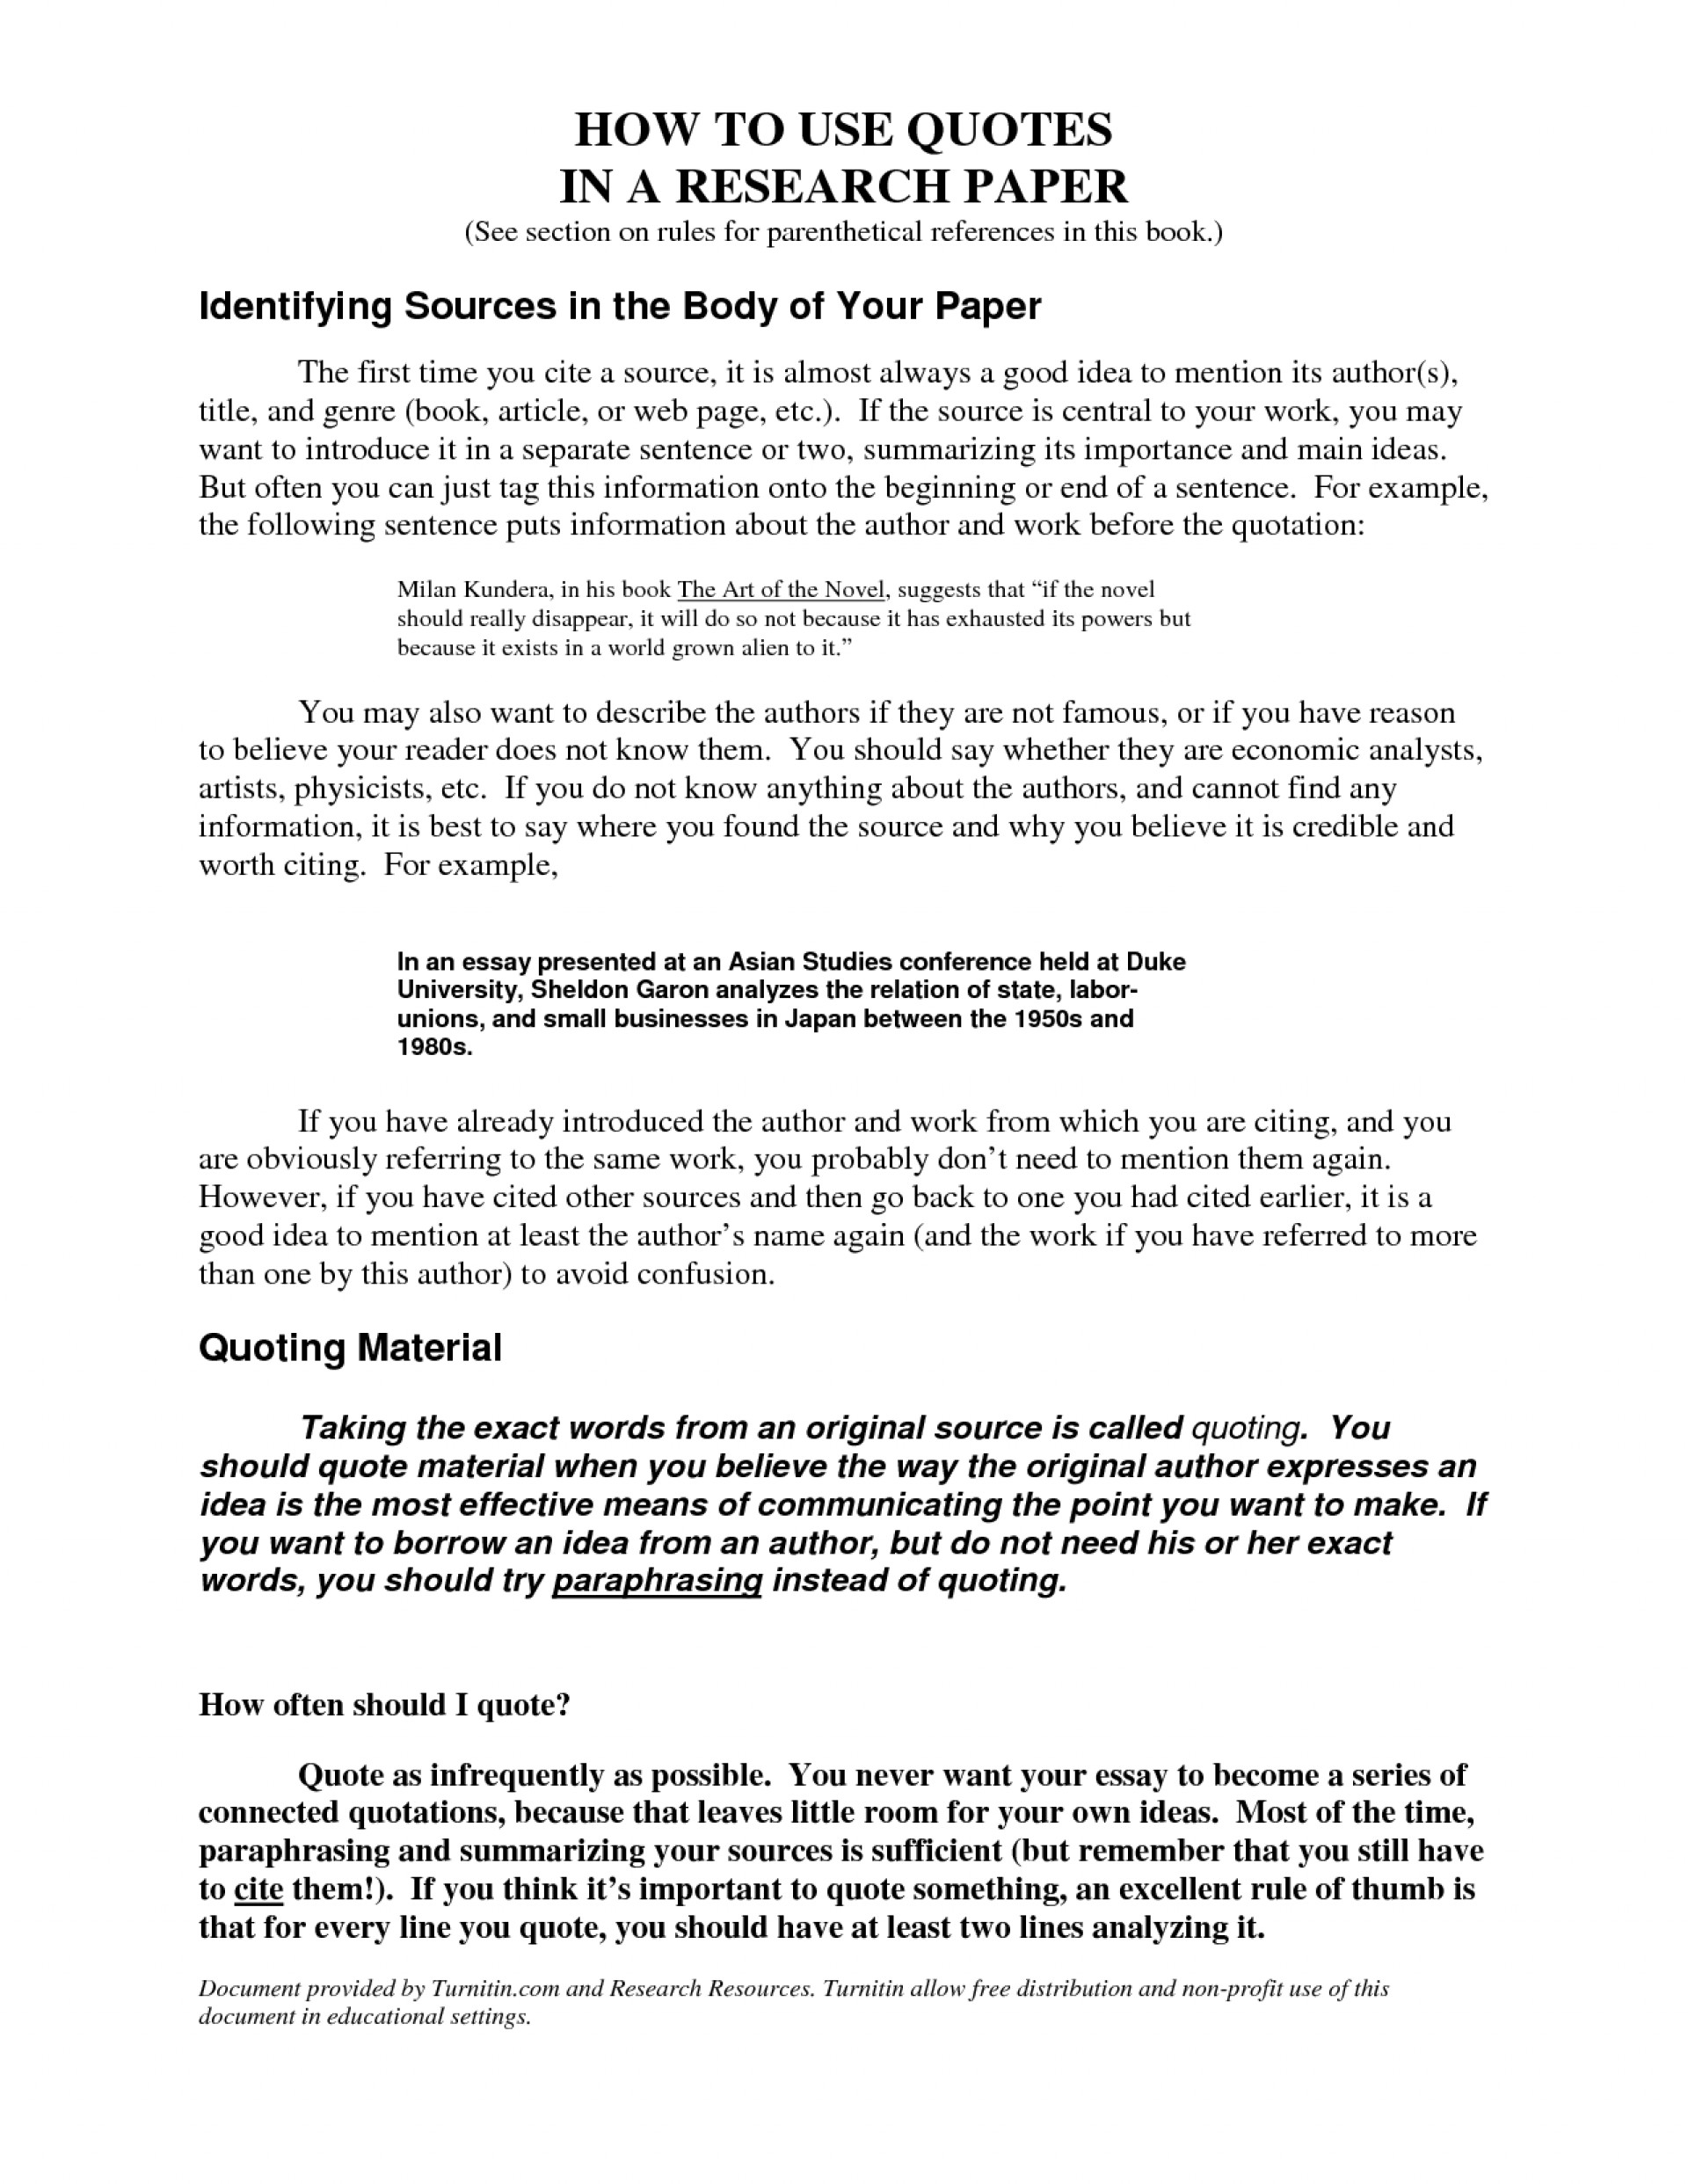 004 Essay Example Quotes Best Solutions Of Writing In Essays Marvelous Embedding On Incredible Topic Wise For Upsc Internet Hindi About Life 1920